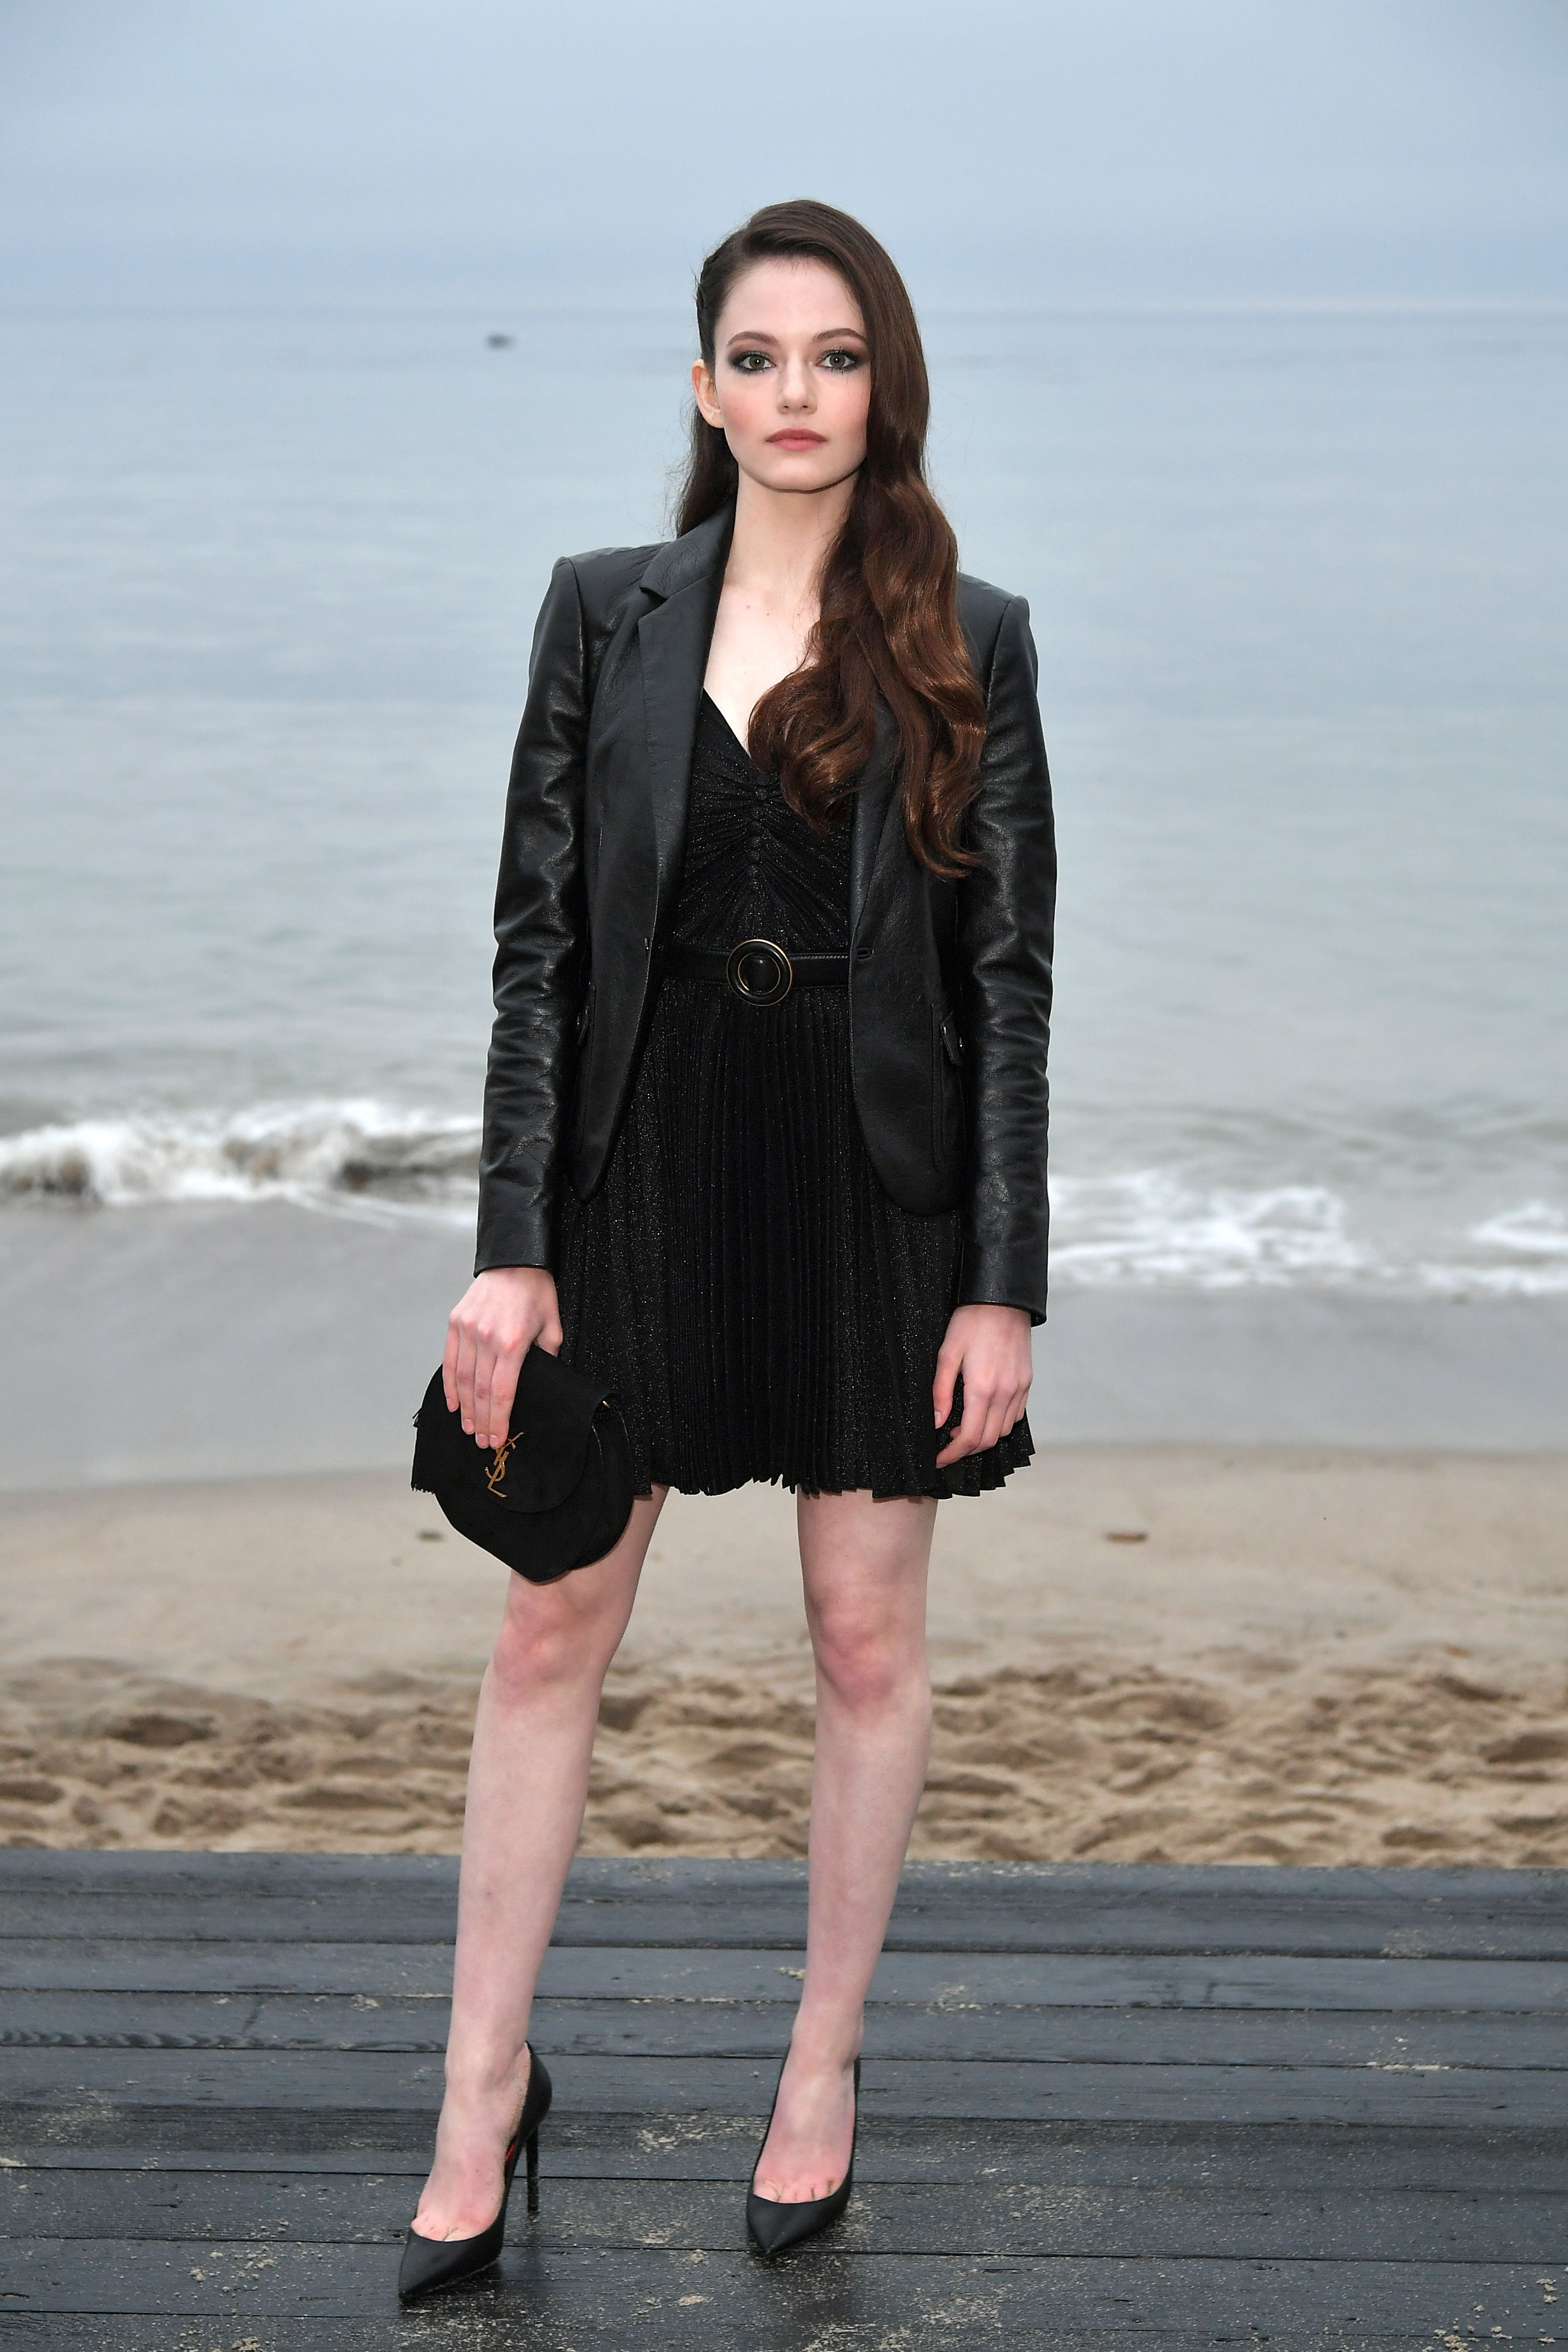 ee6f1a9a0c6c Best dressed celebrities and models this week